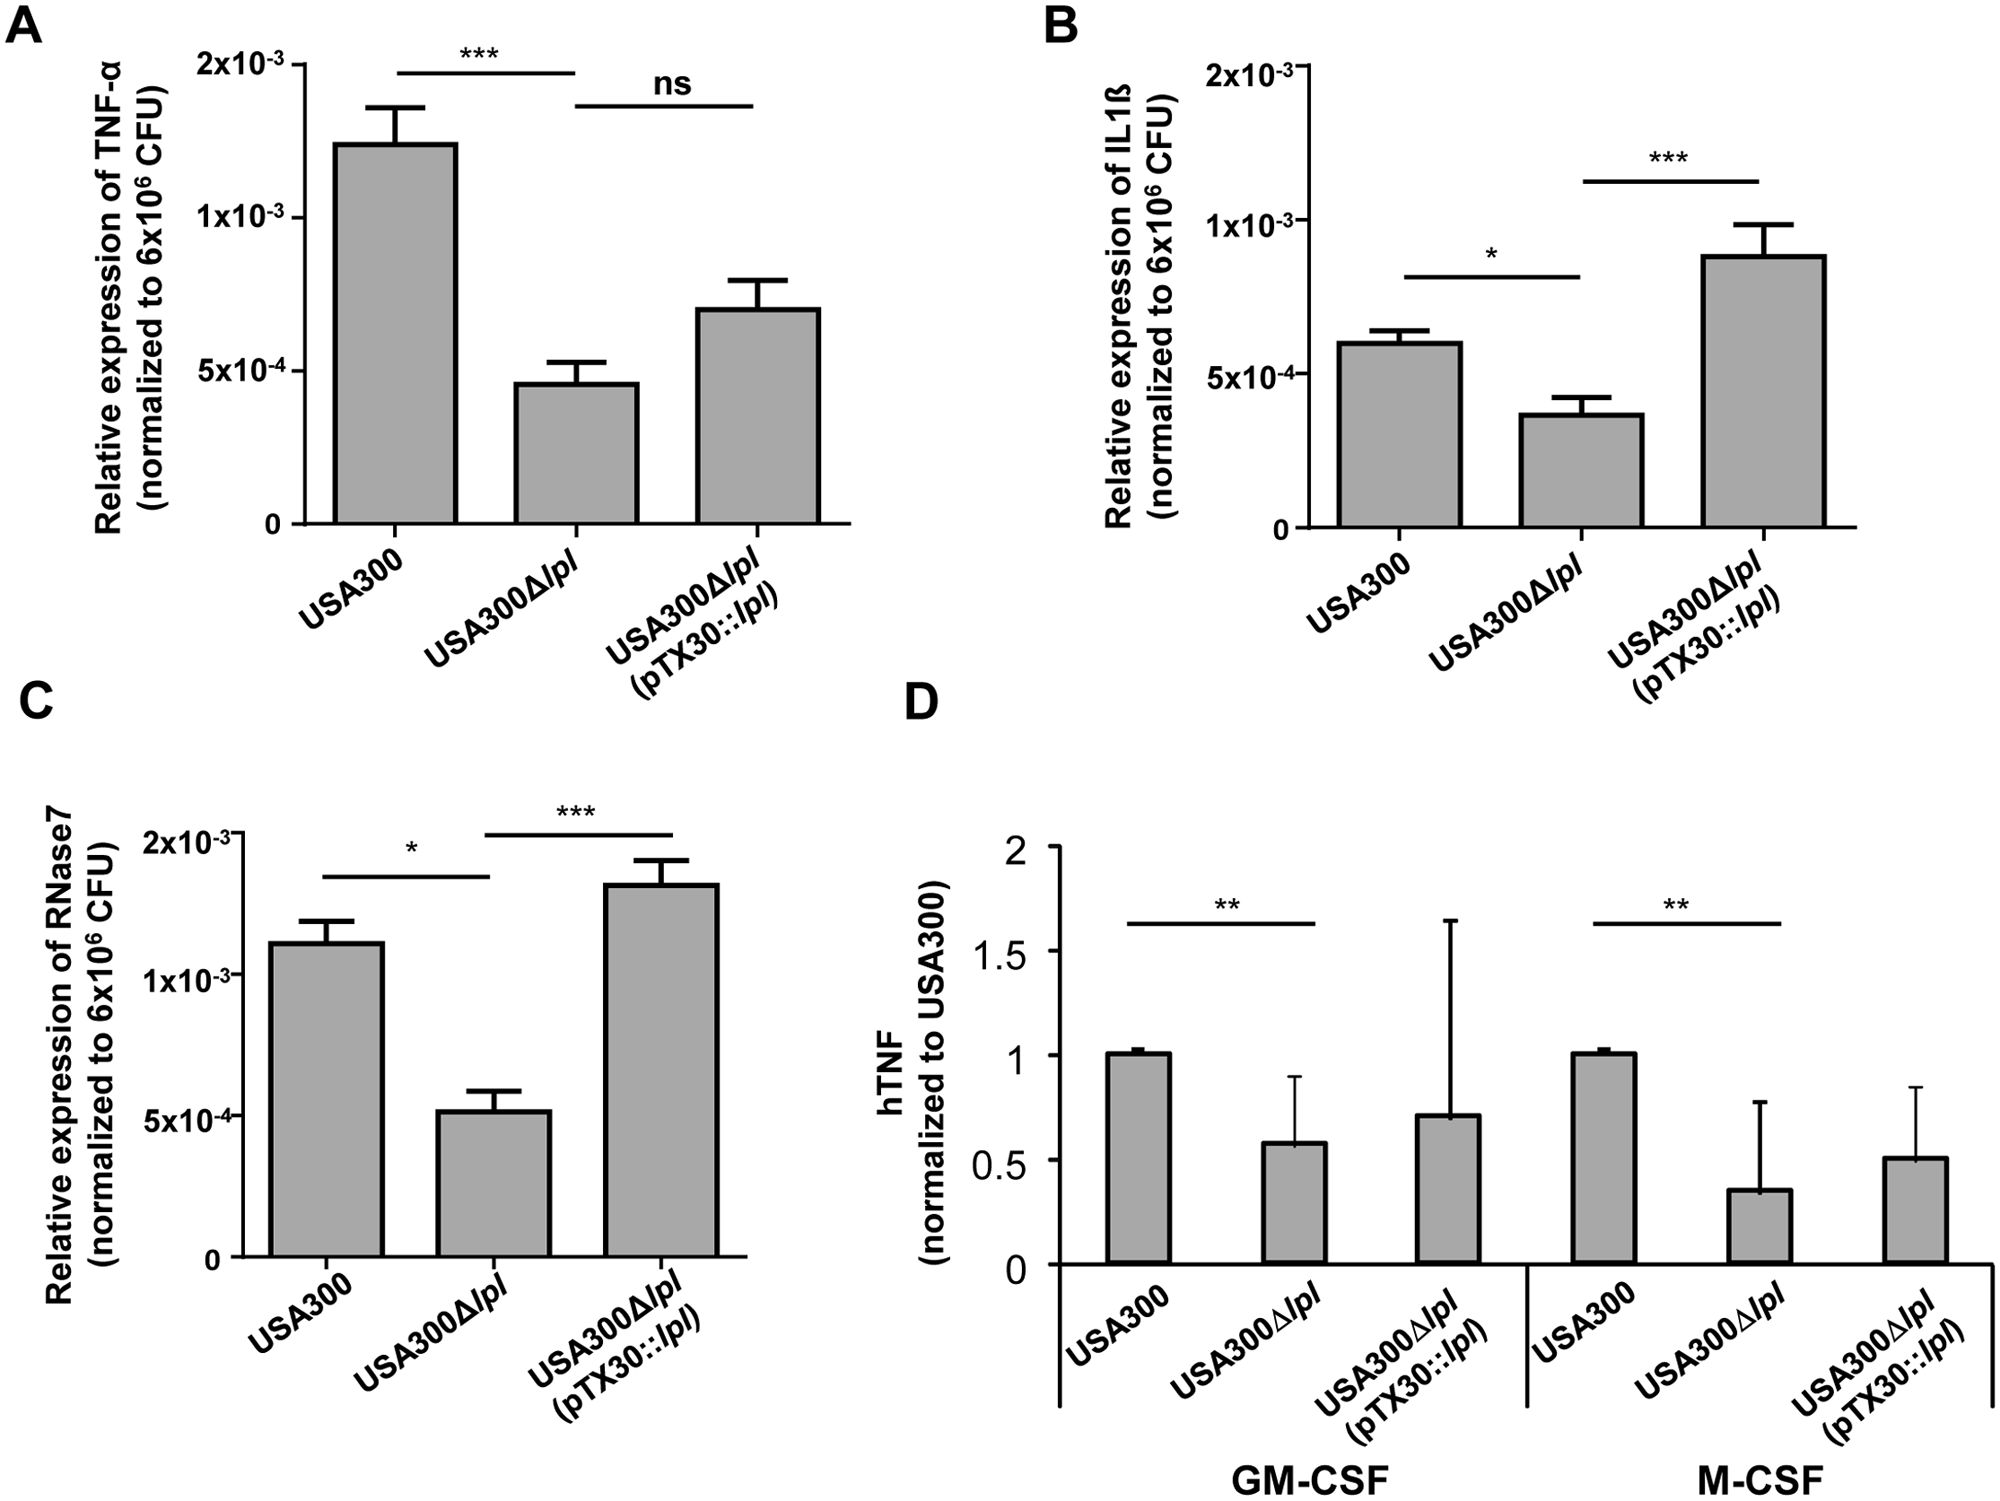 Cytokine and antimicrobial peptide (AMP) expression in differentiated primary human keratinocytes and macrophages.